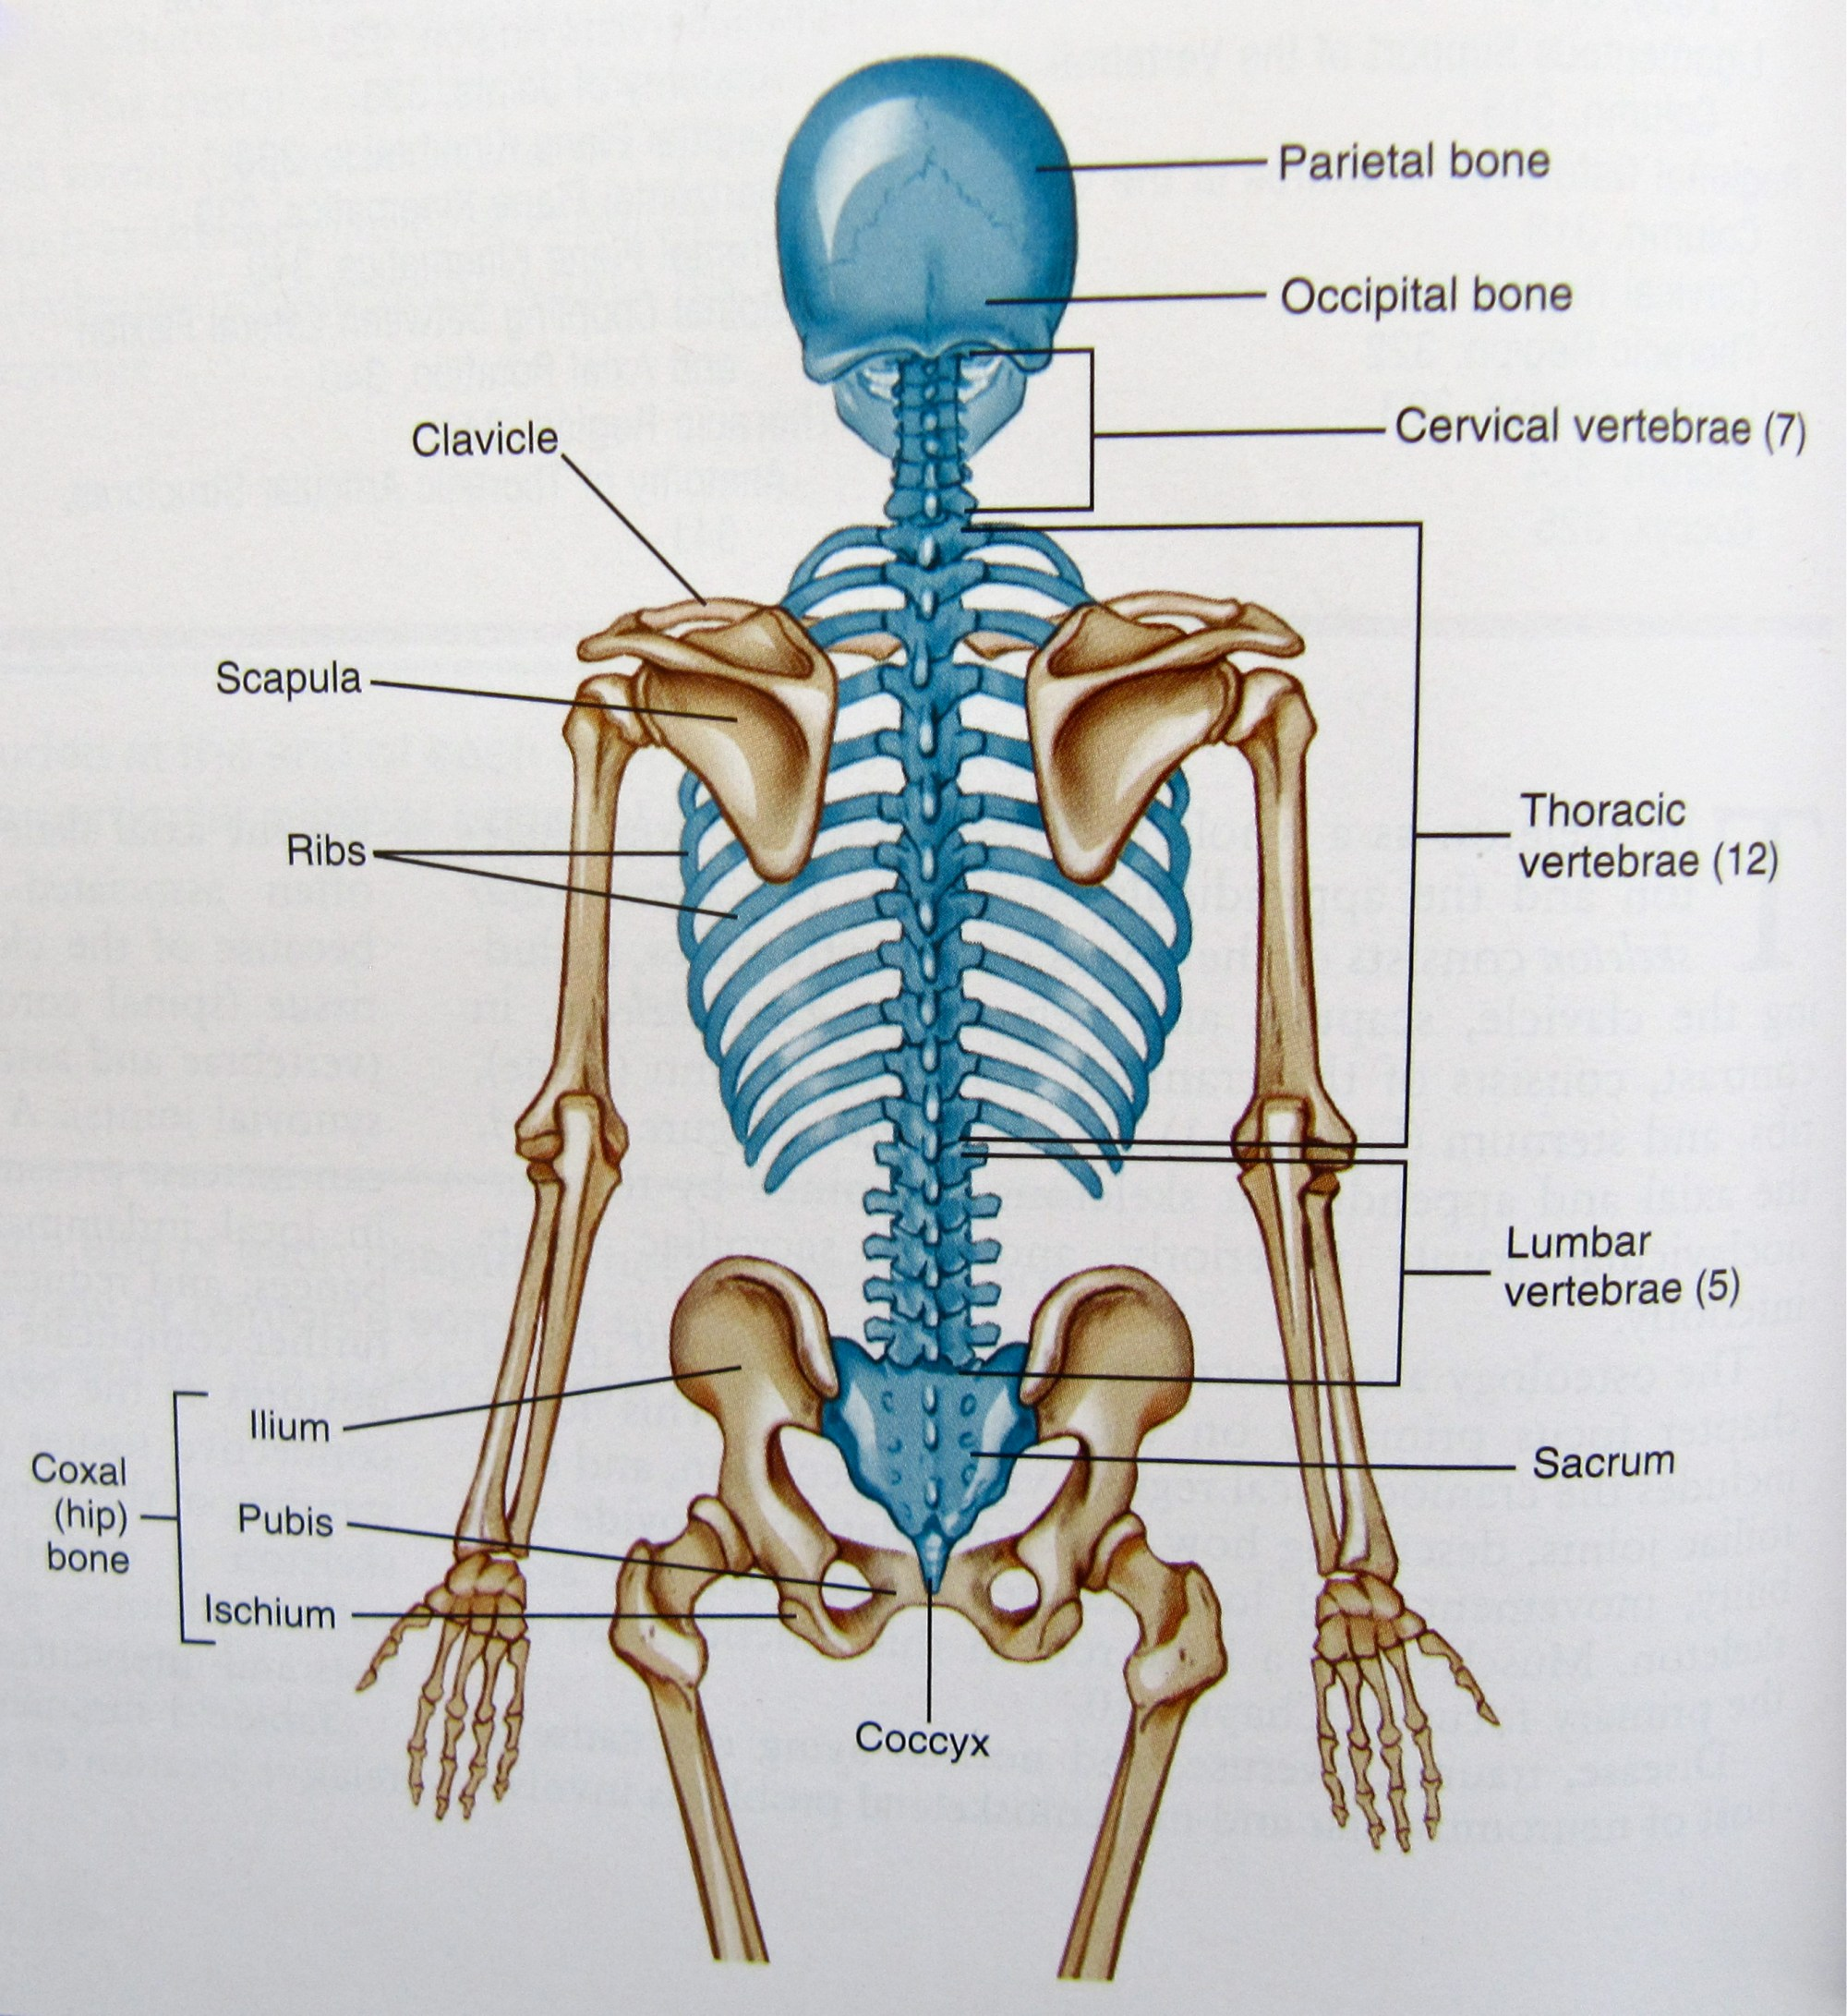 hight resolution of axial skeleton diagram